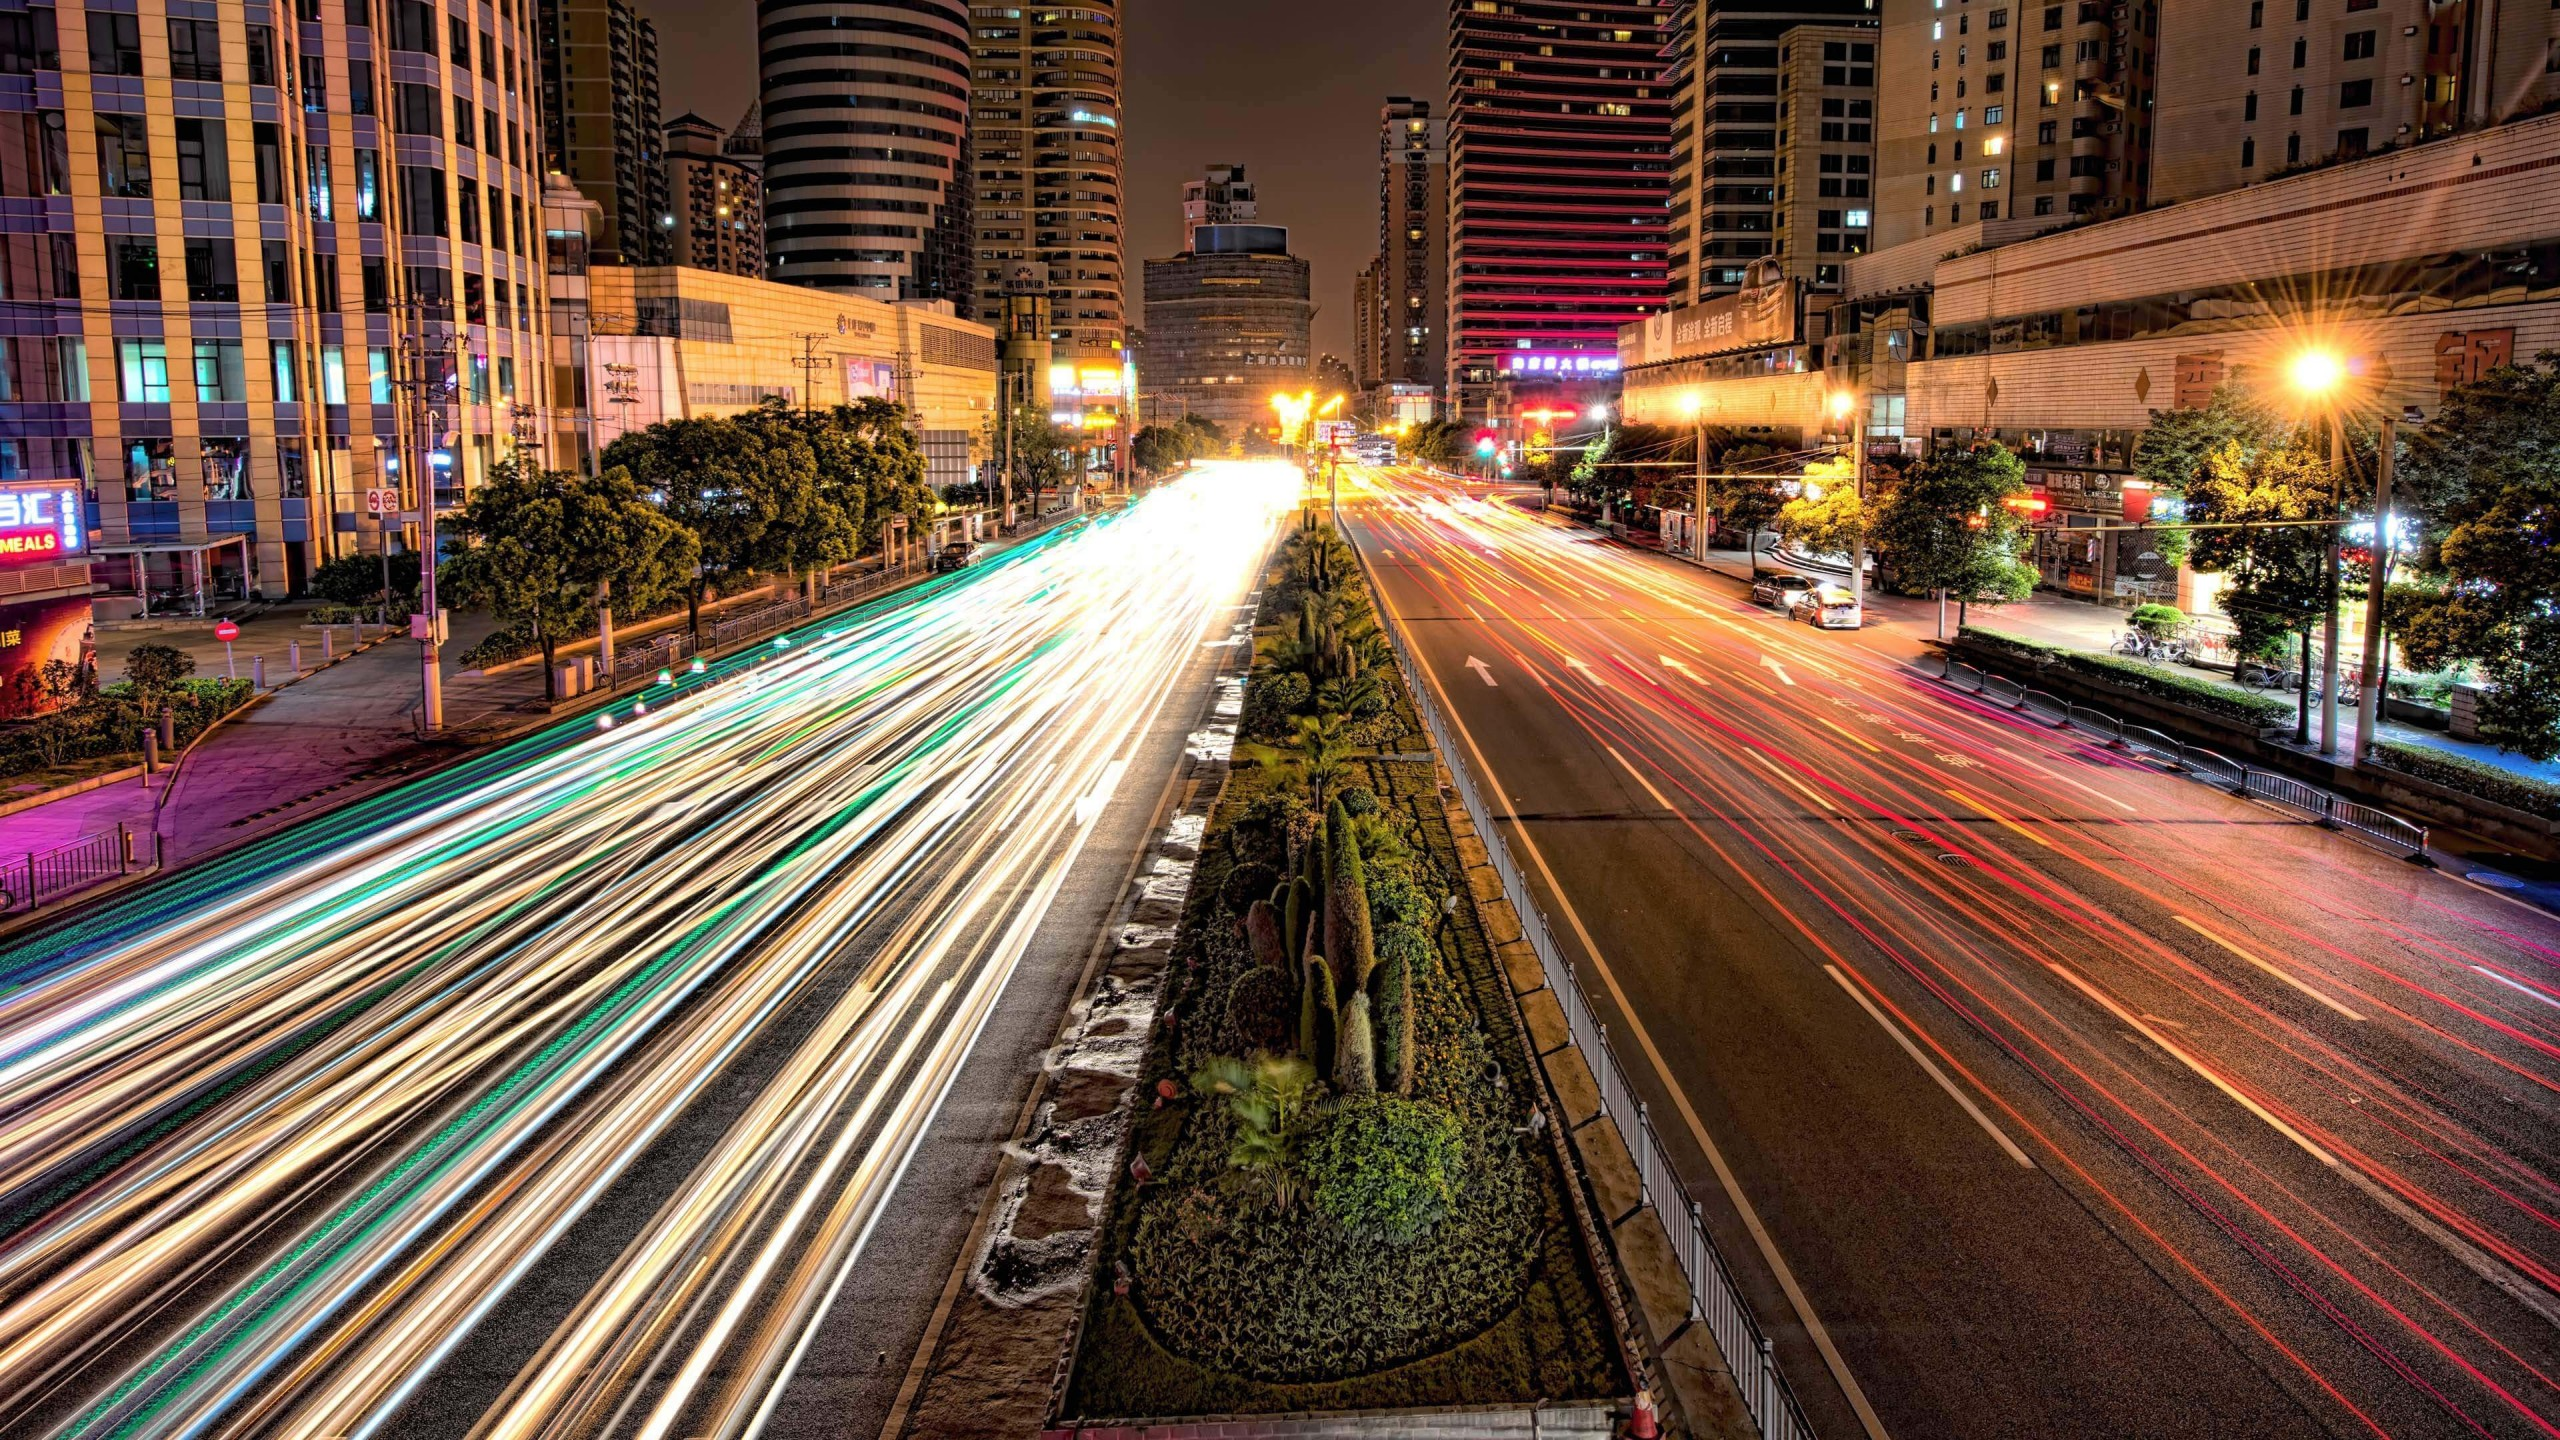 Busy Road in Shanghai at Night Wallpaper for Desktop 2560x1440